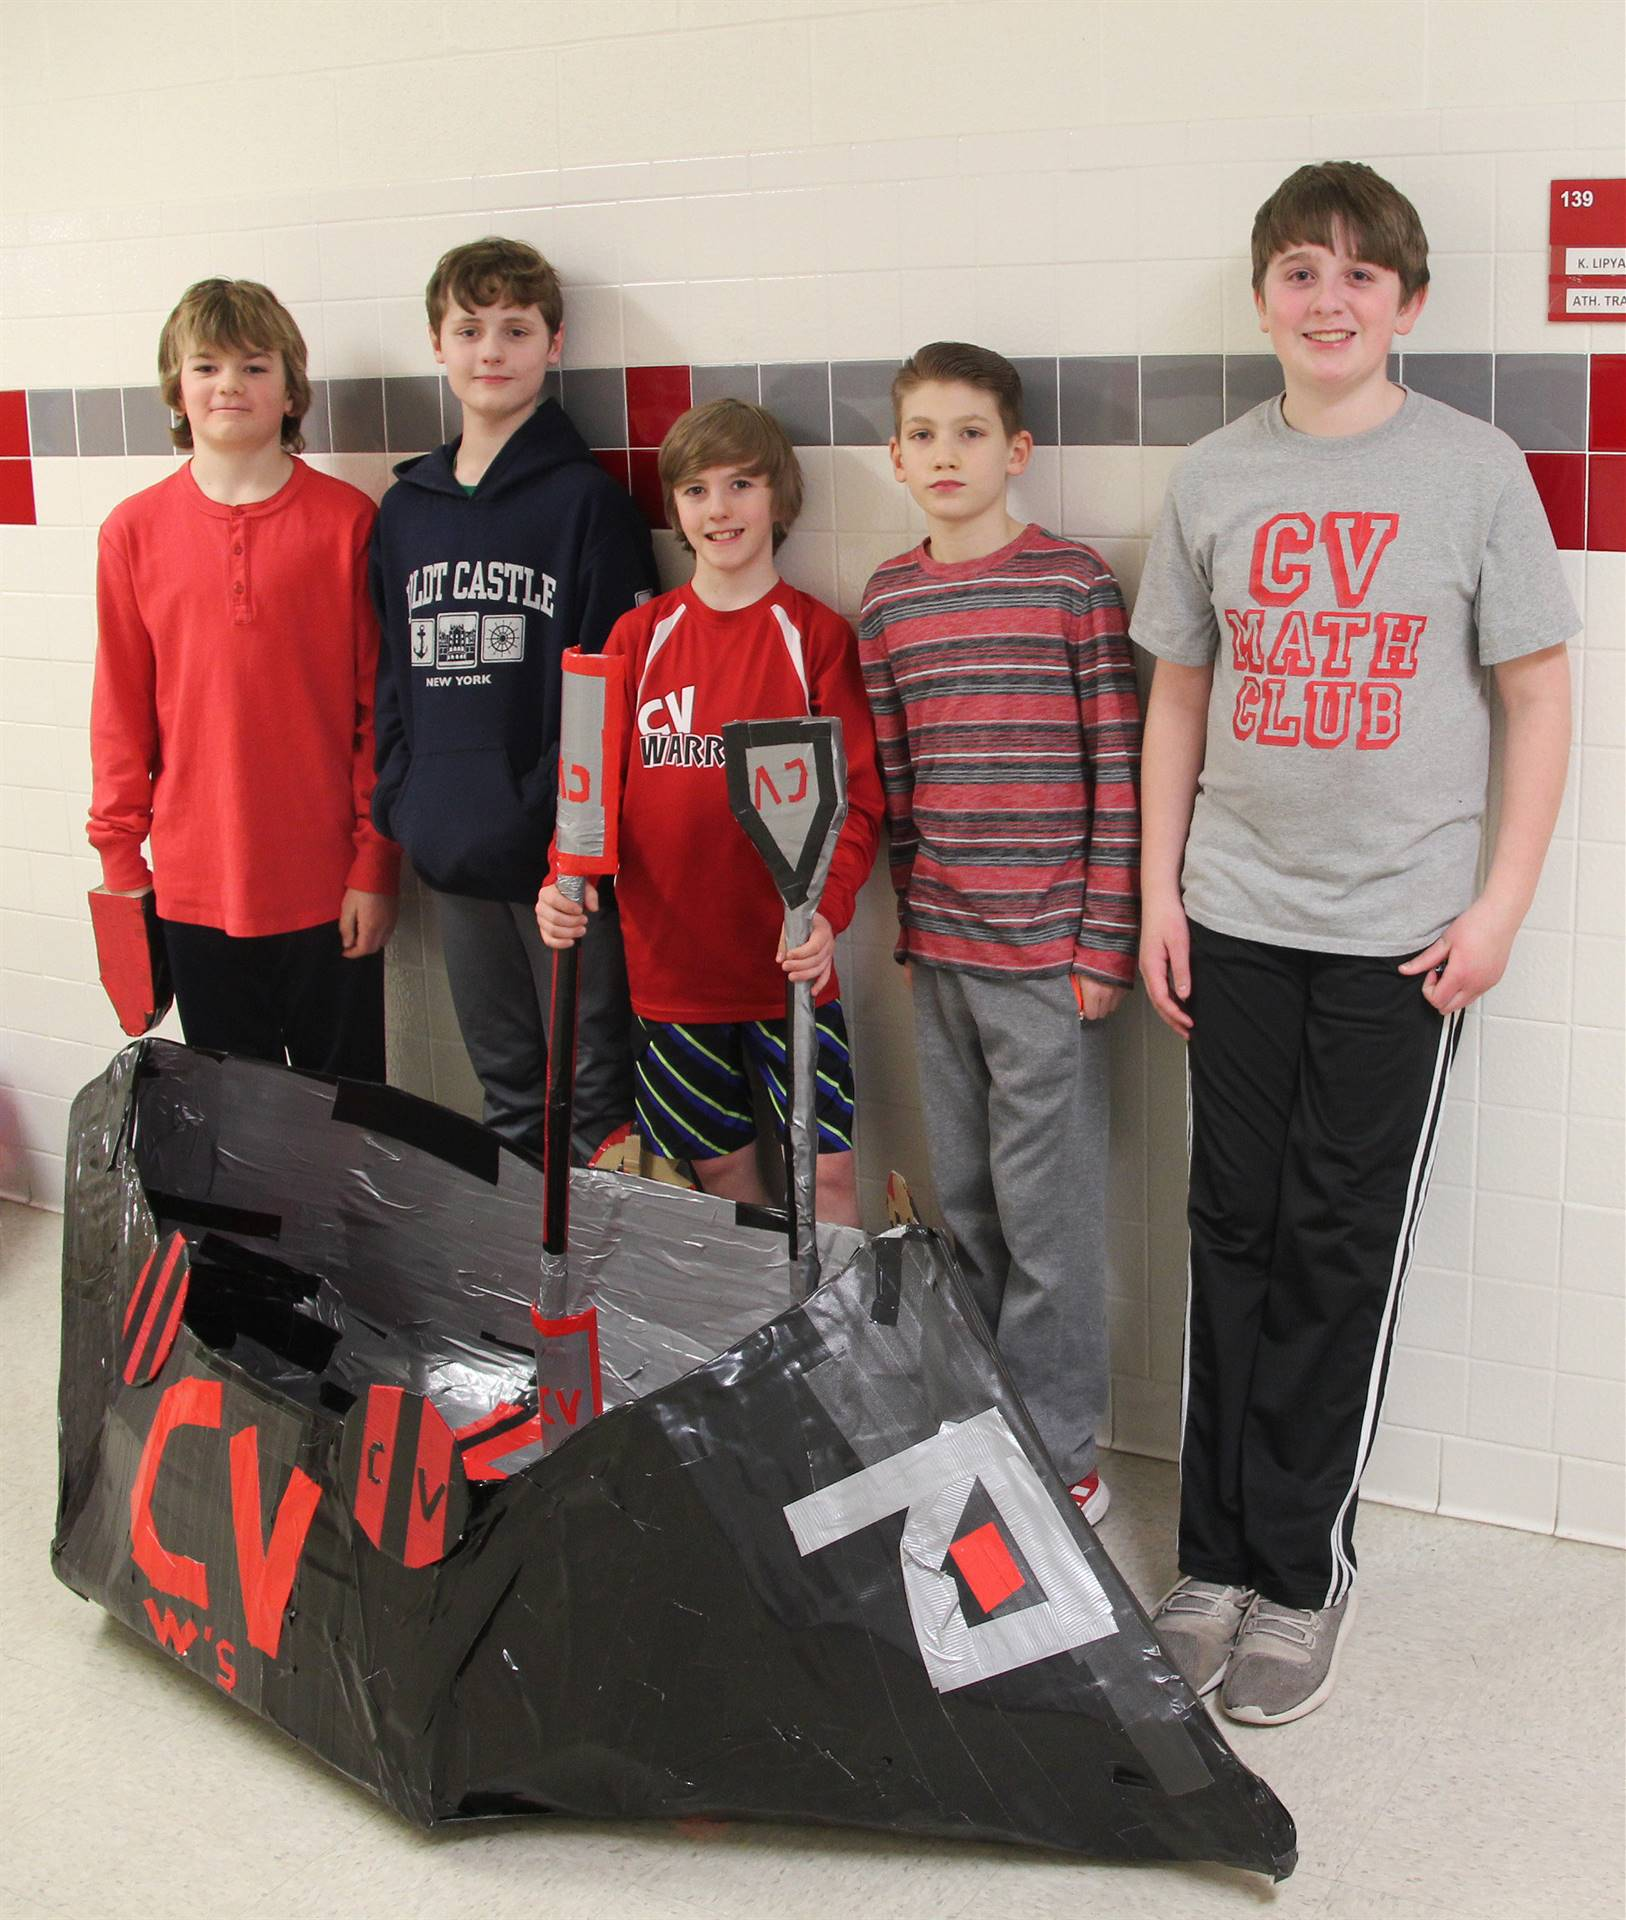 five students standing with cardboard boat